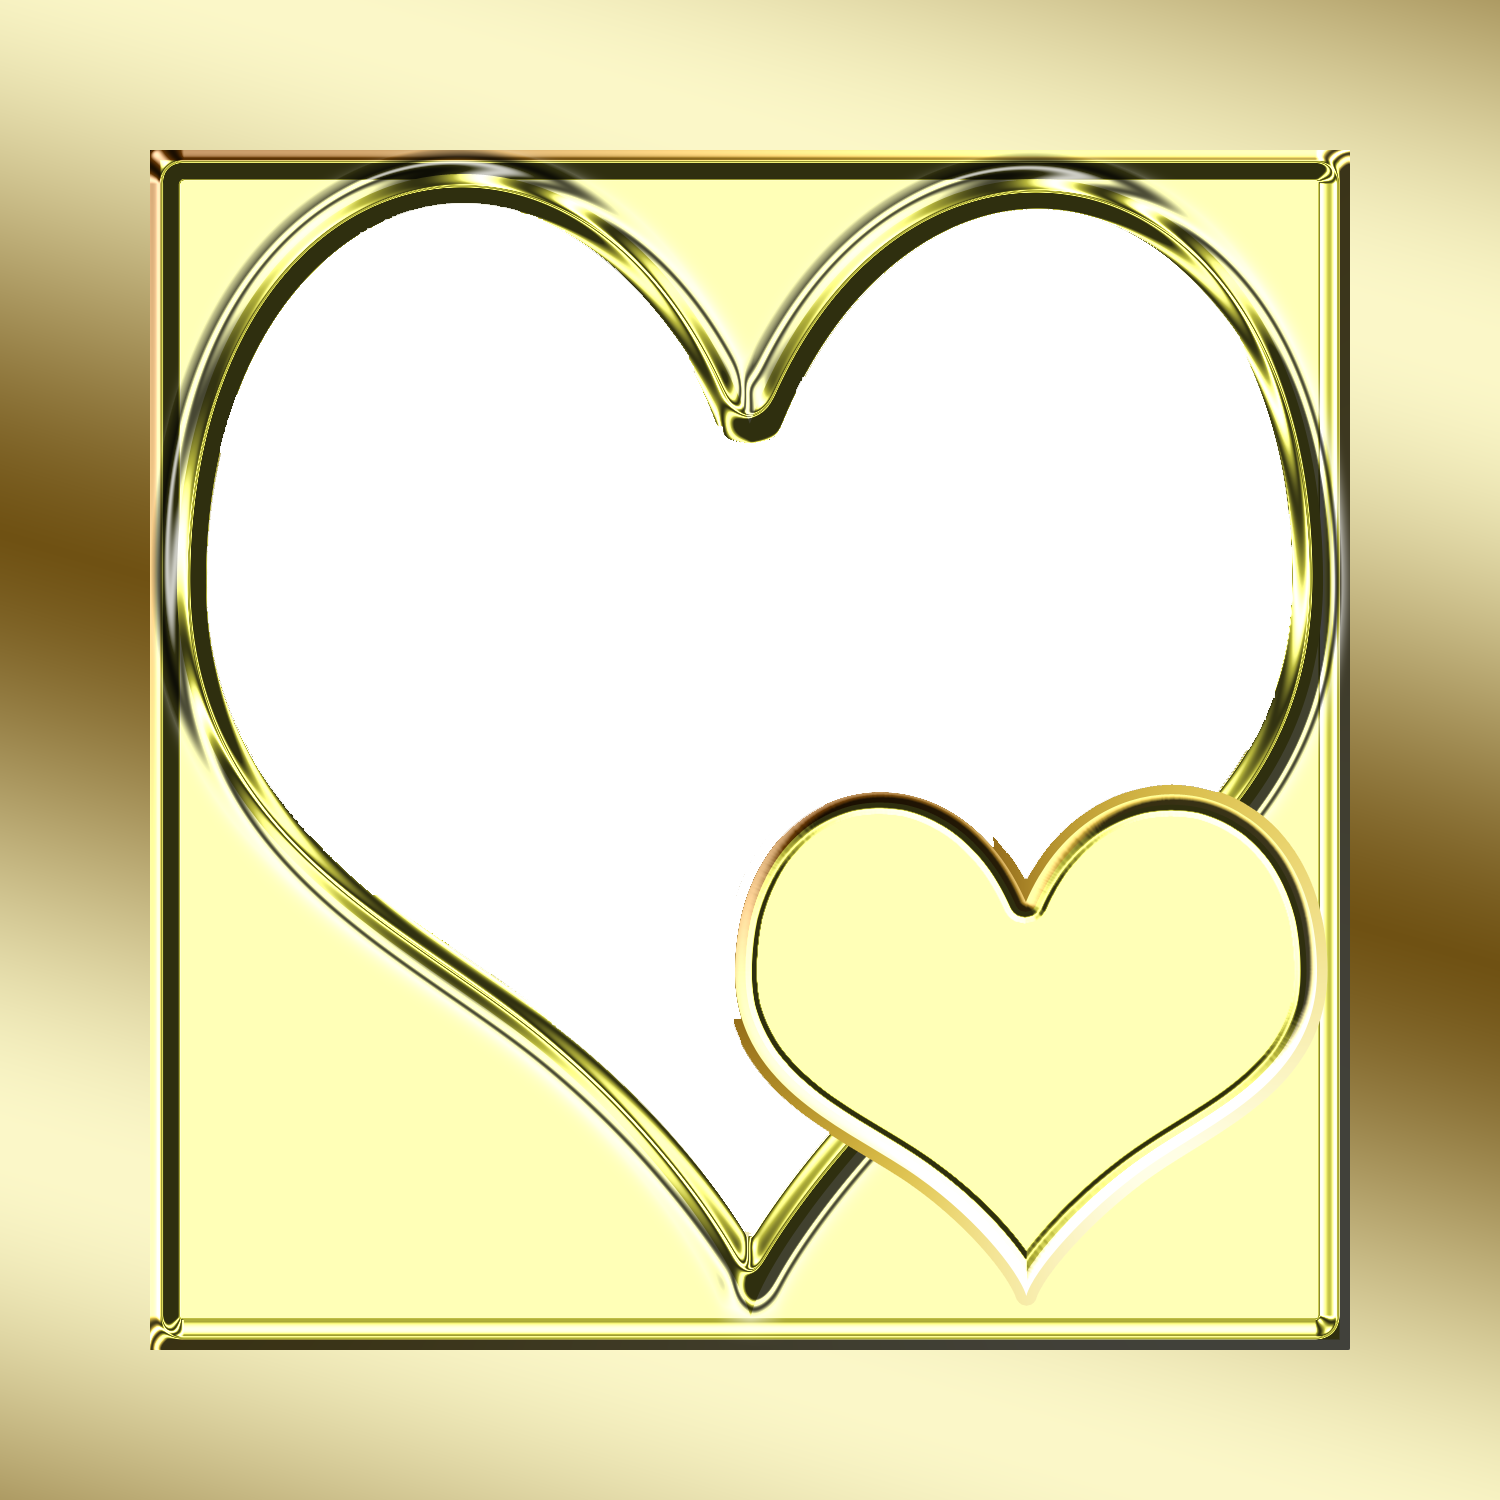 Download Free High quality Frame Heart Png Transparent Images